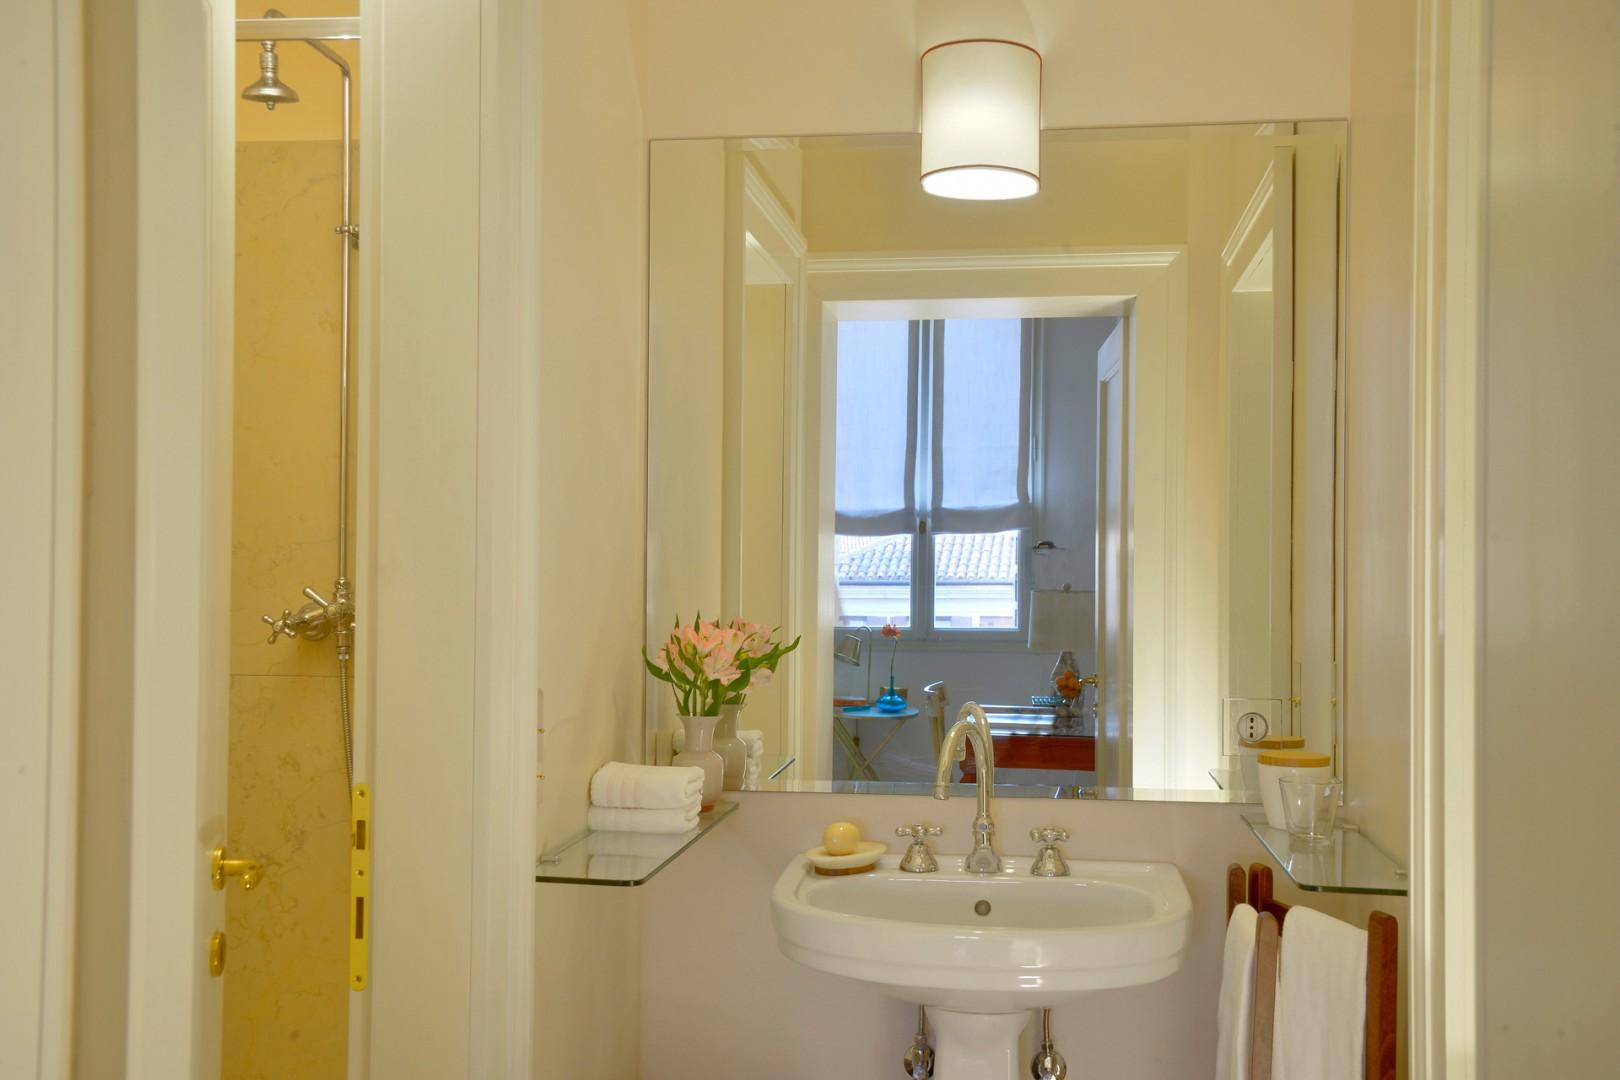 Bathroom with shower accessed from the entry area.